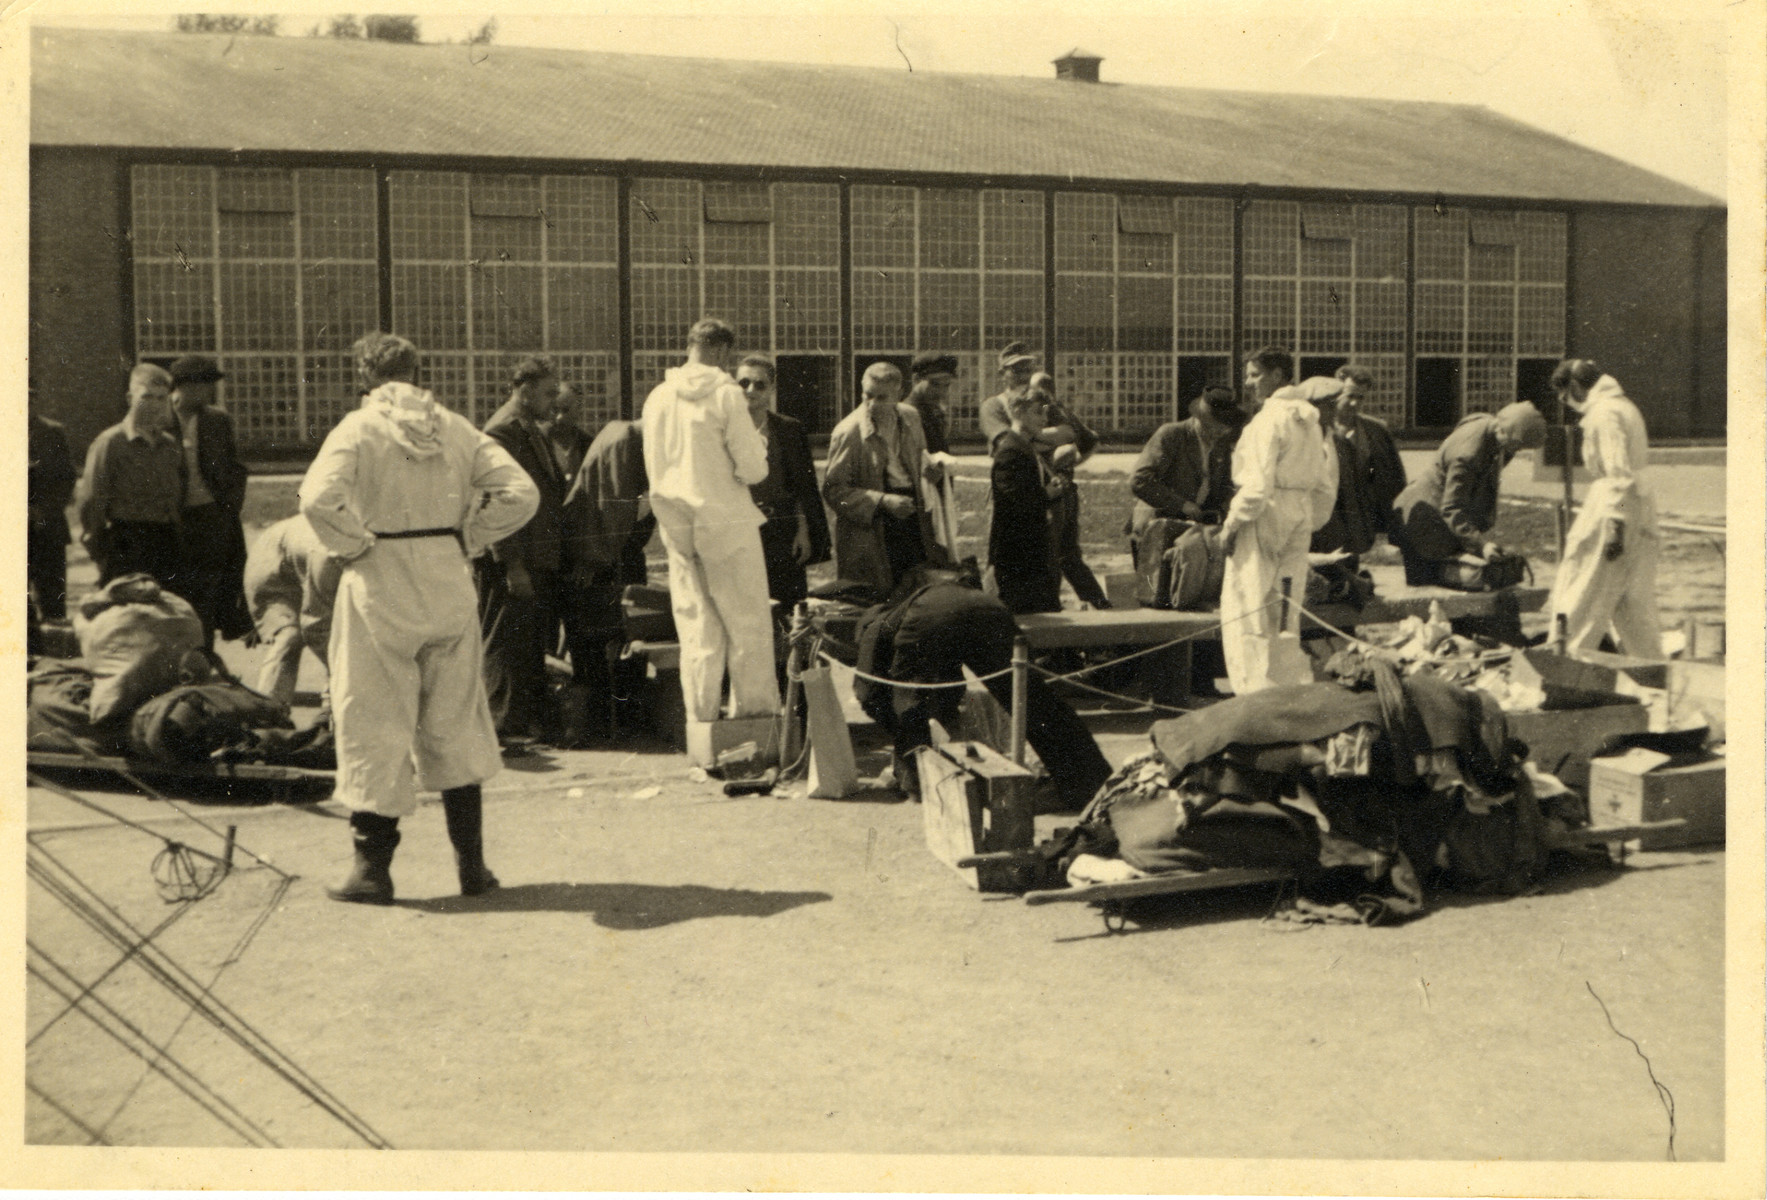 A group of men line up outside a building; they are being attended by five men dressed in white overalls.  On the floor are cardboard boxes, a suitcase, and two stretchers covered with clothes.